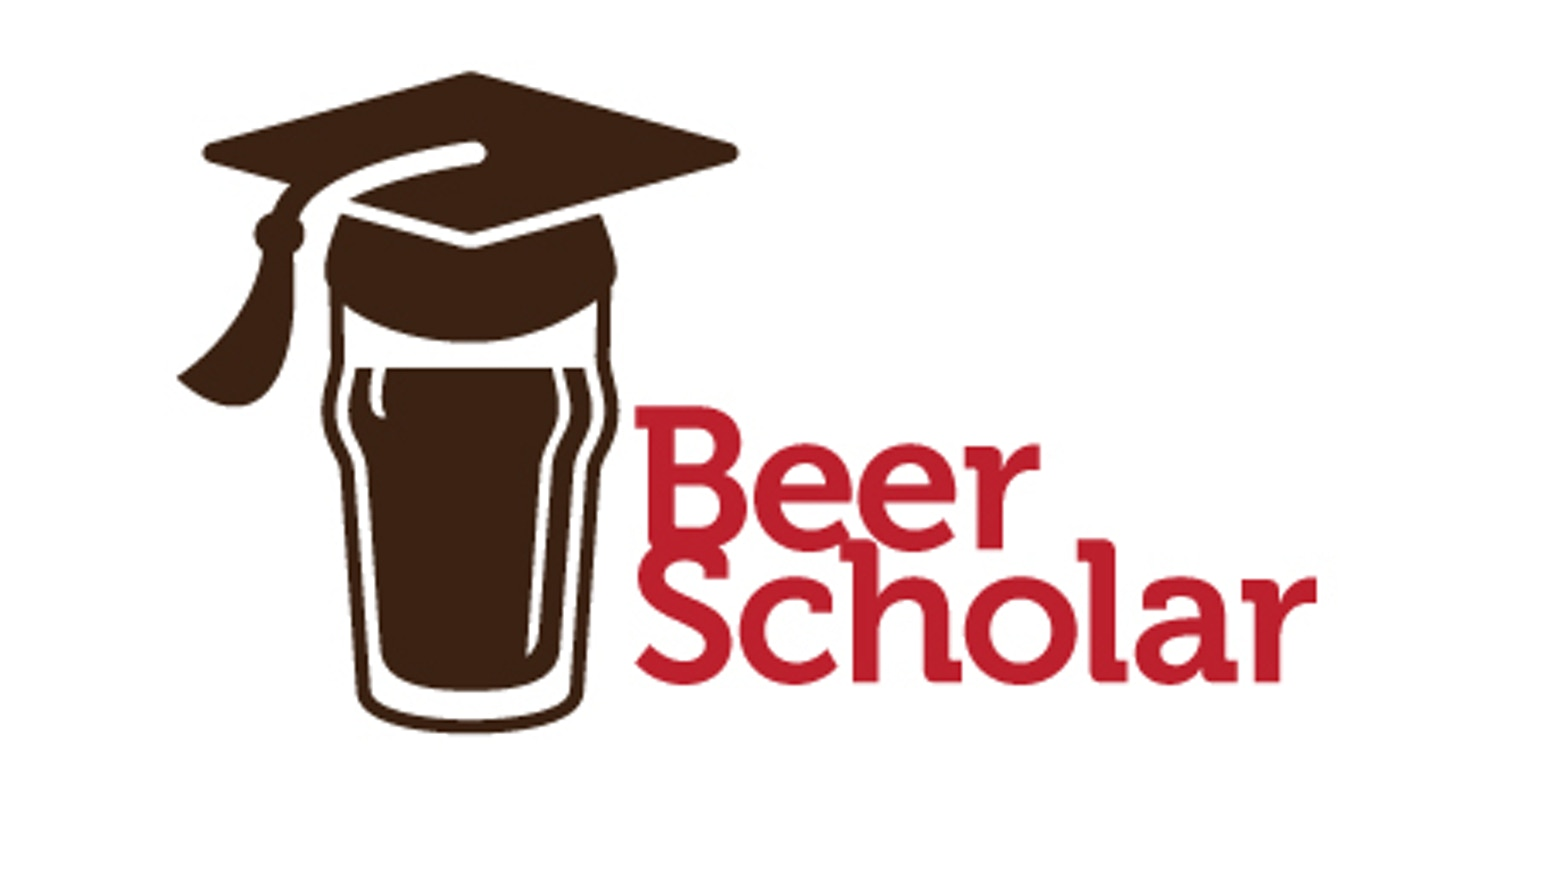 Pass the cicerone exams with the beer scholar study guides by crush the cicerone tests go to thebeerscholar to purchase the best study guide xflitez Image collections